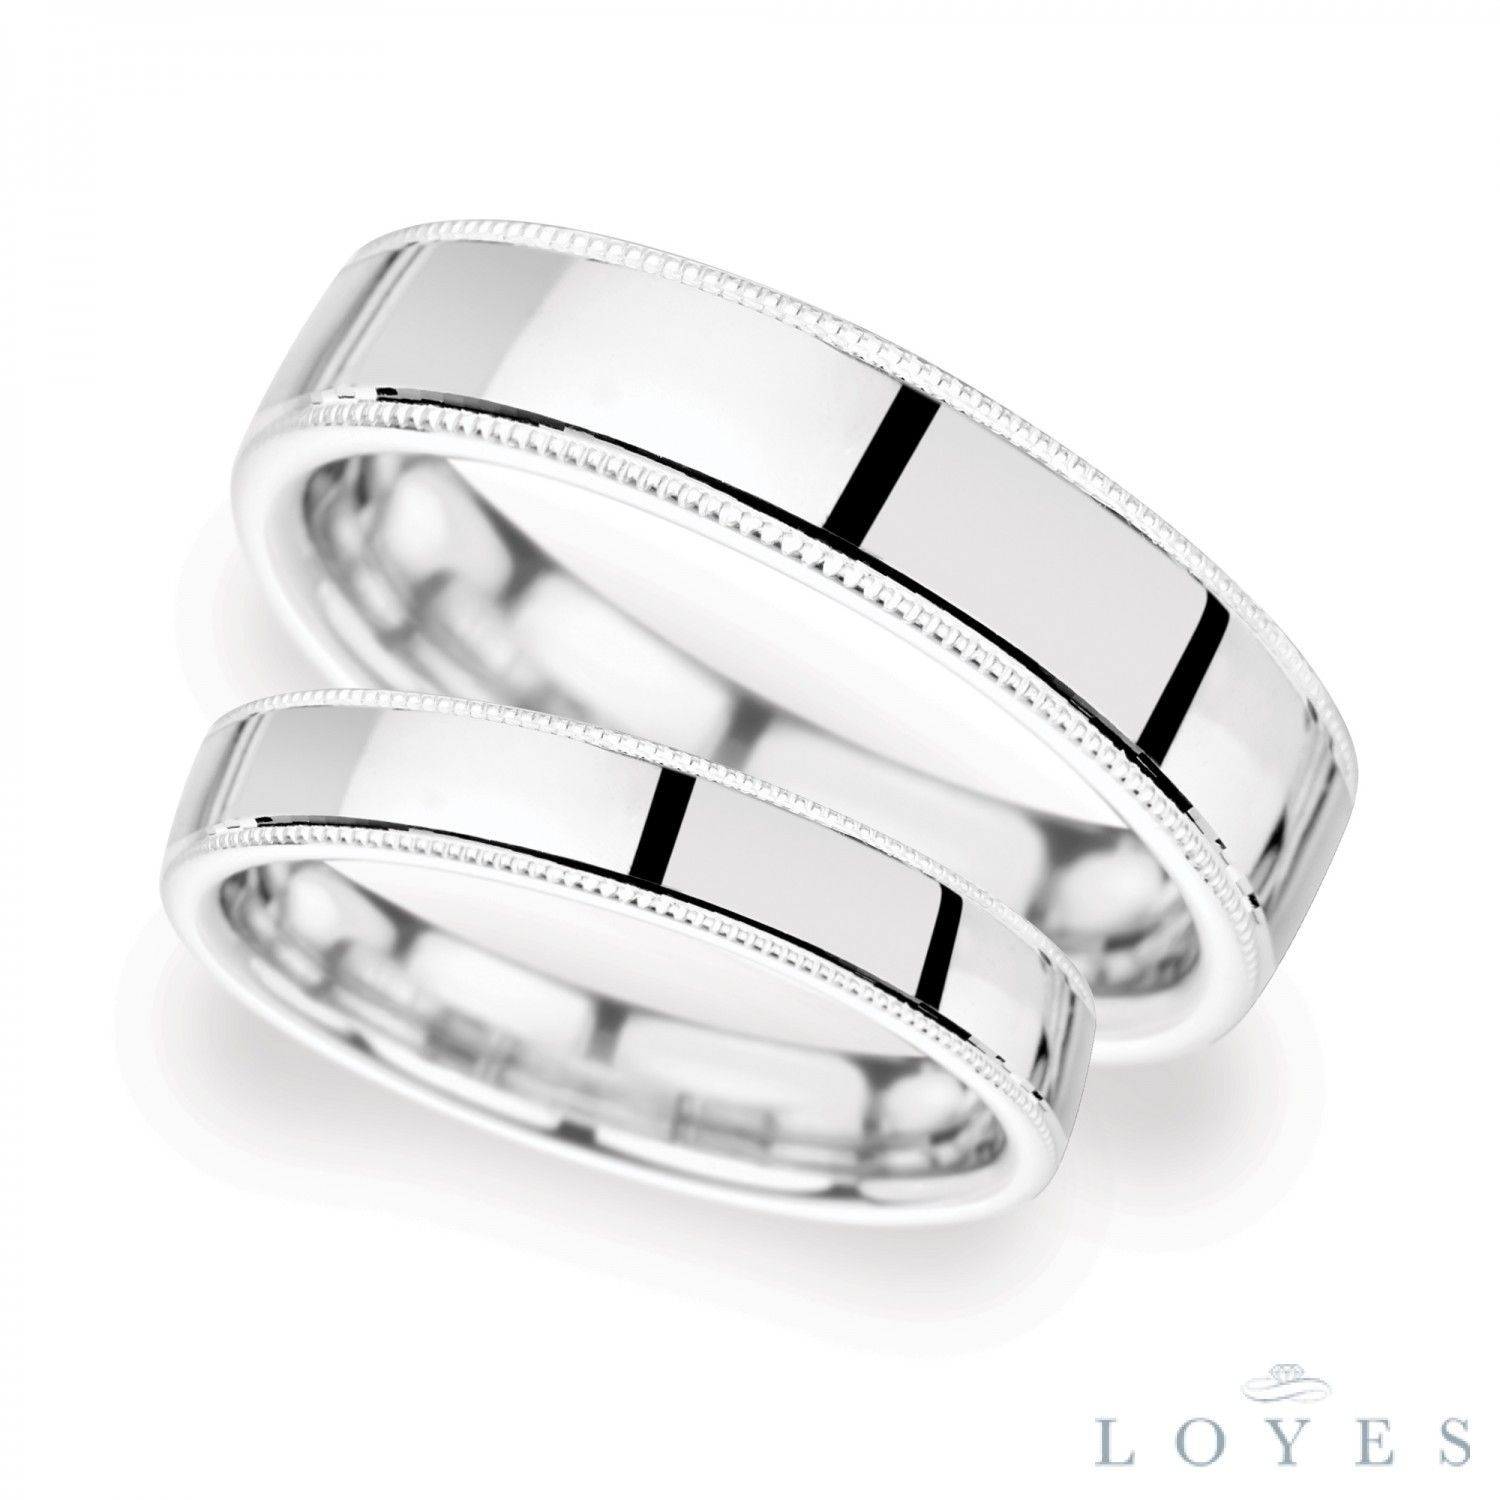 Bonnie and Clyde matching wedding rings Dublin Found on